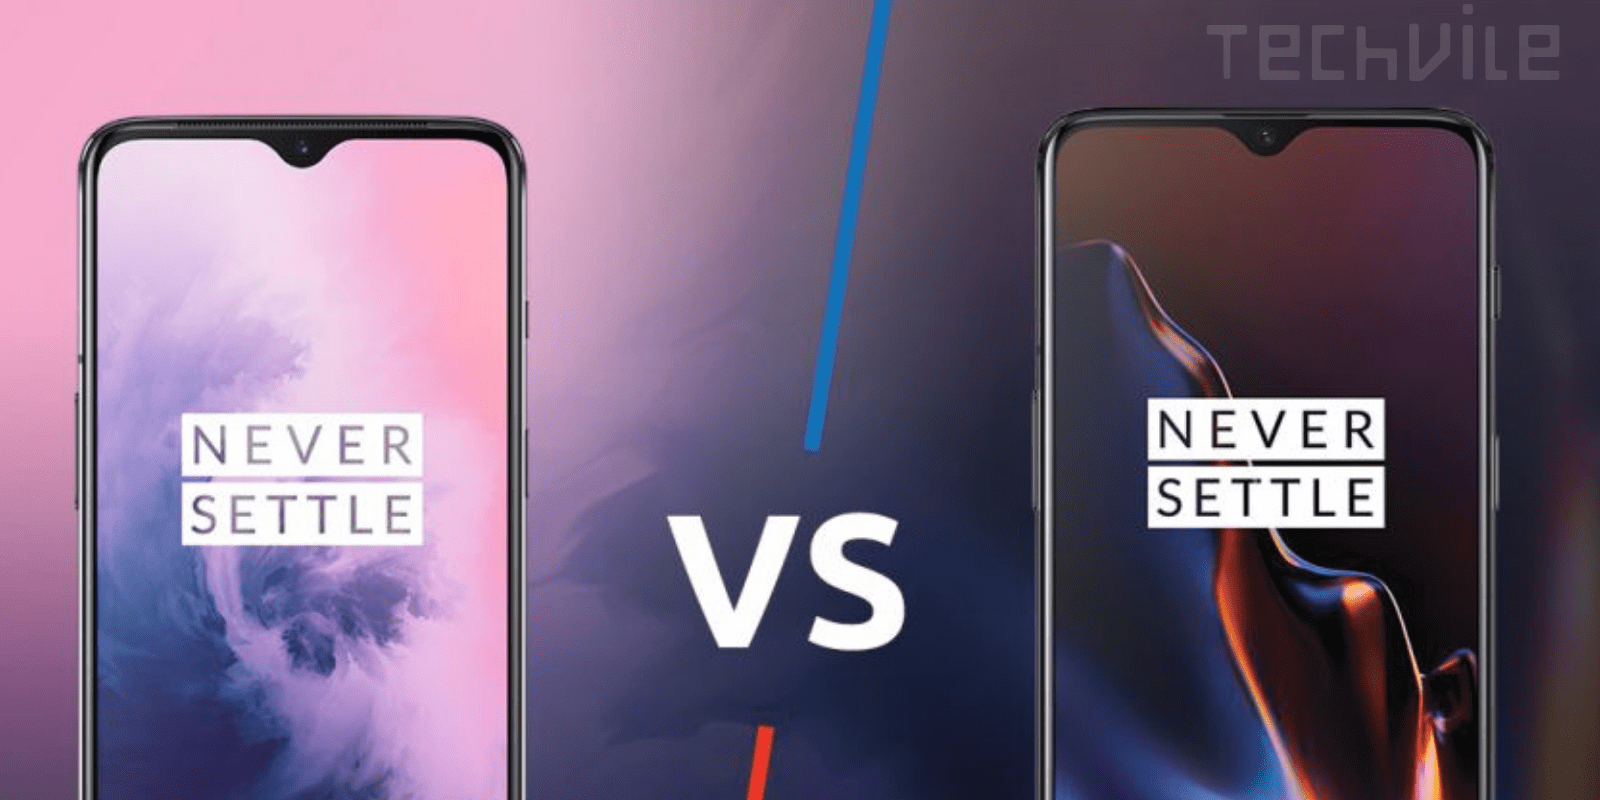 OnePlus 7 vs OnePlus 6T - A Detailed Comparision and Overview